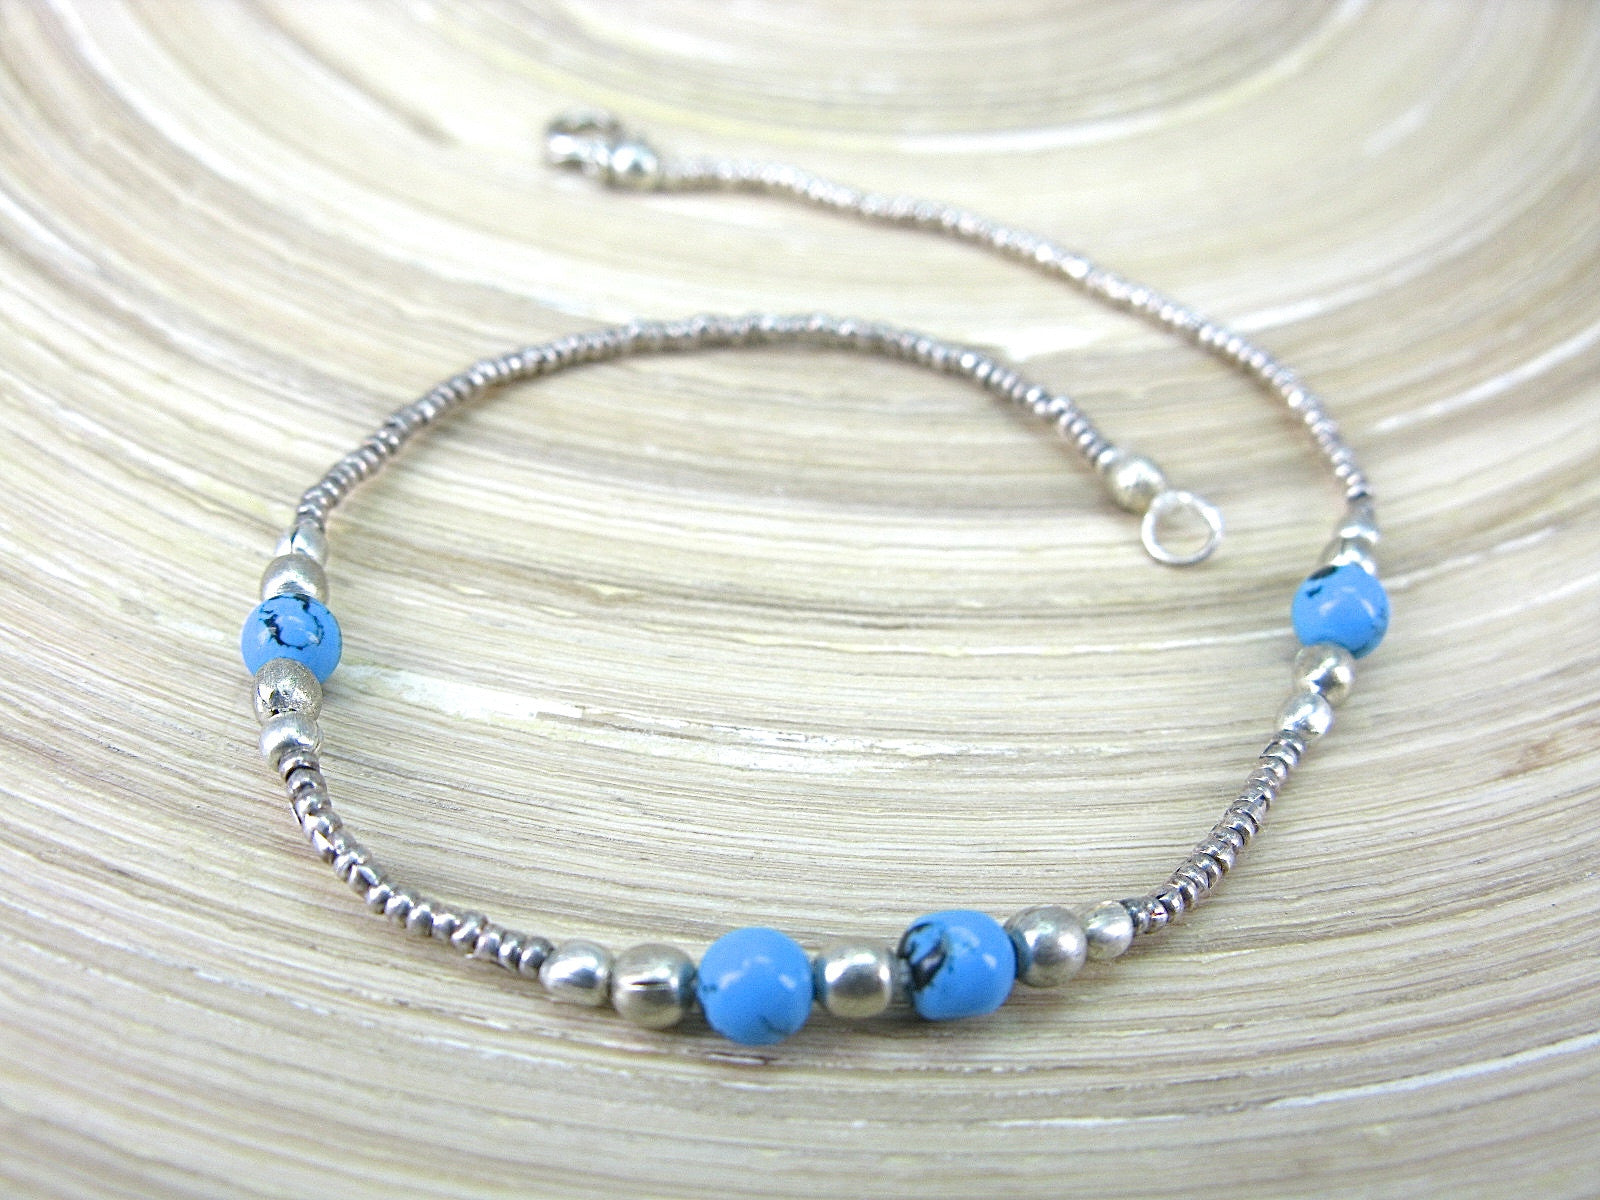 Turquoise Bead Tribal Oxidized 925 Sterling Silver Bracelet